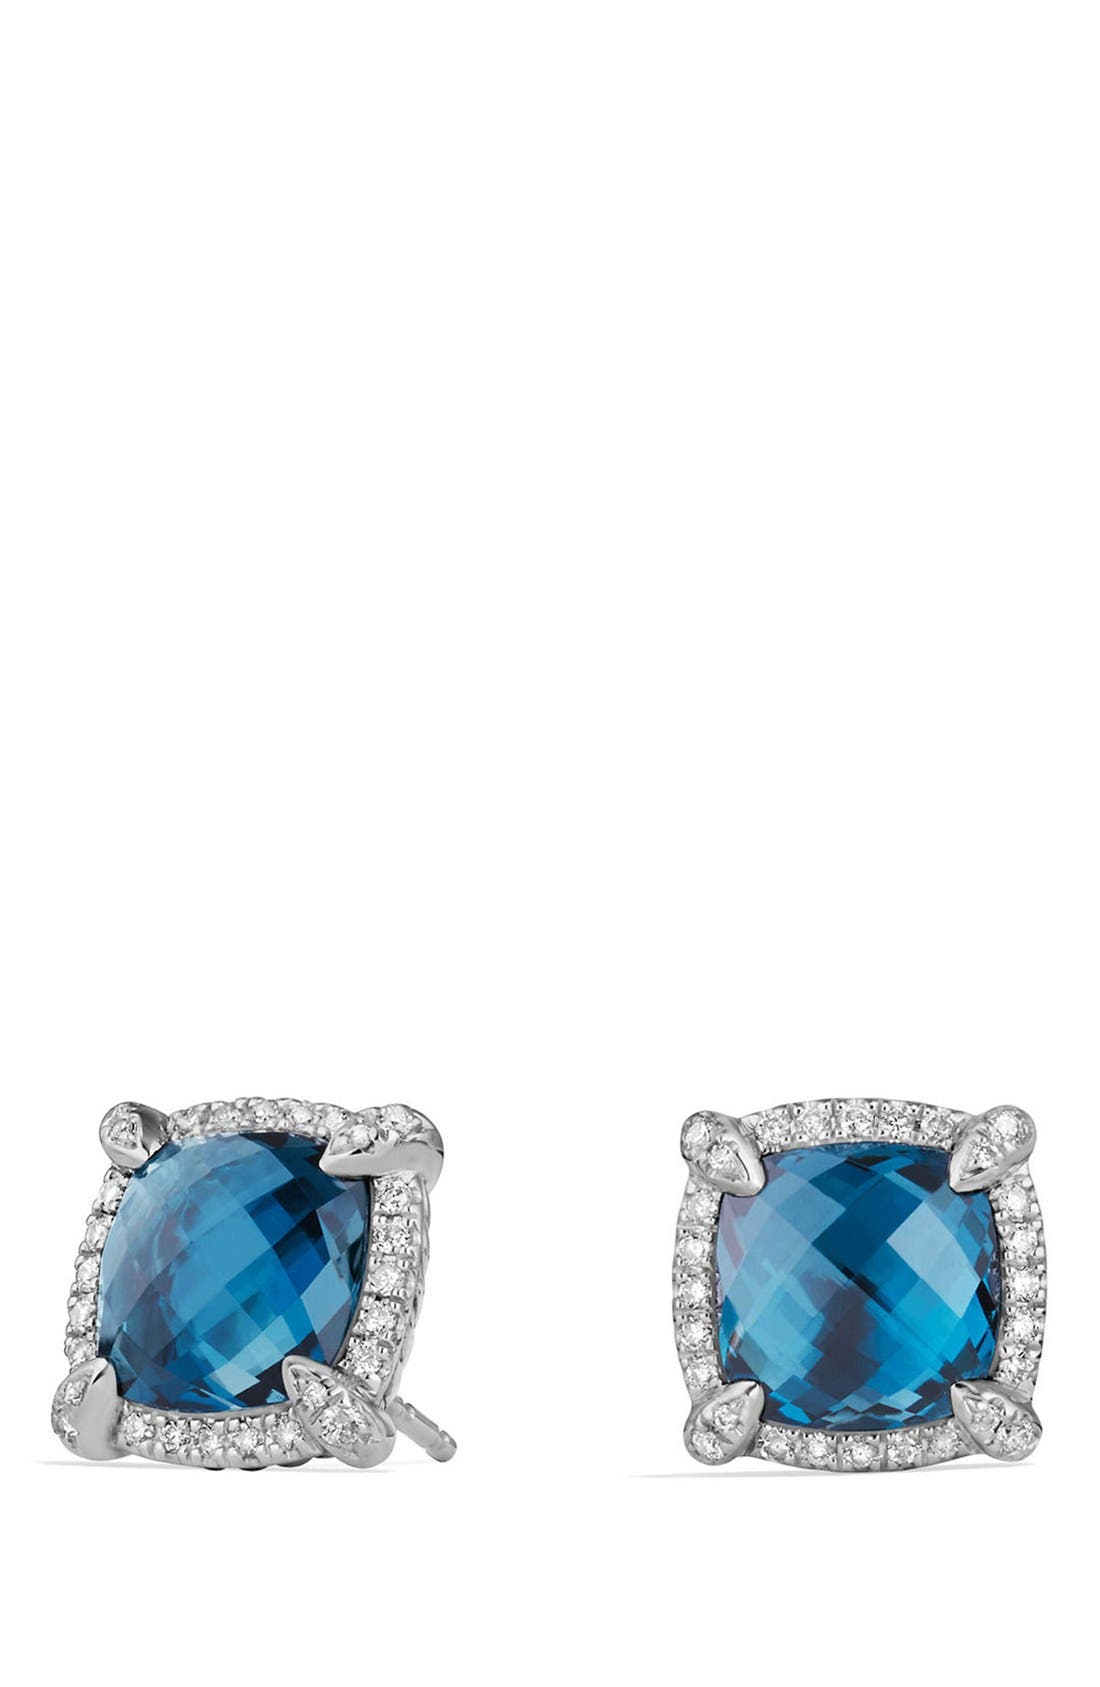 David Yurman 'Châtelaine' Pavé Bezel Stud Earrings with Diamonds